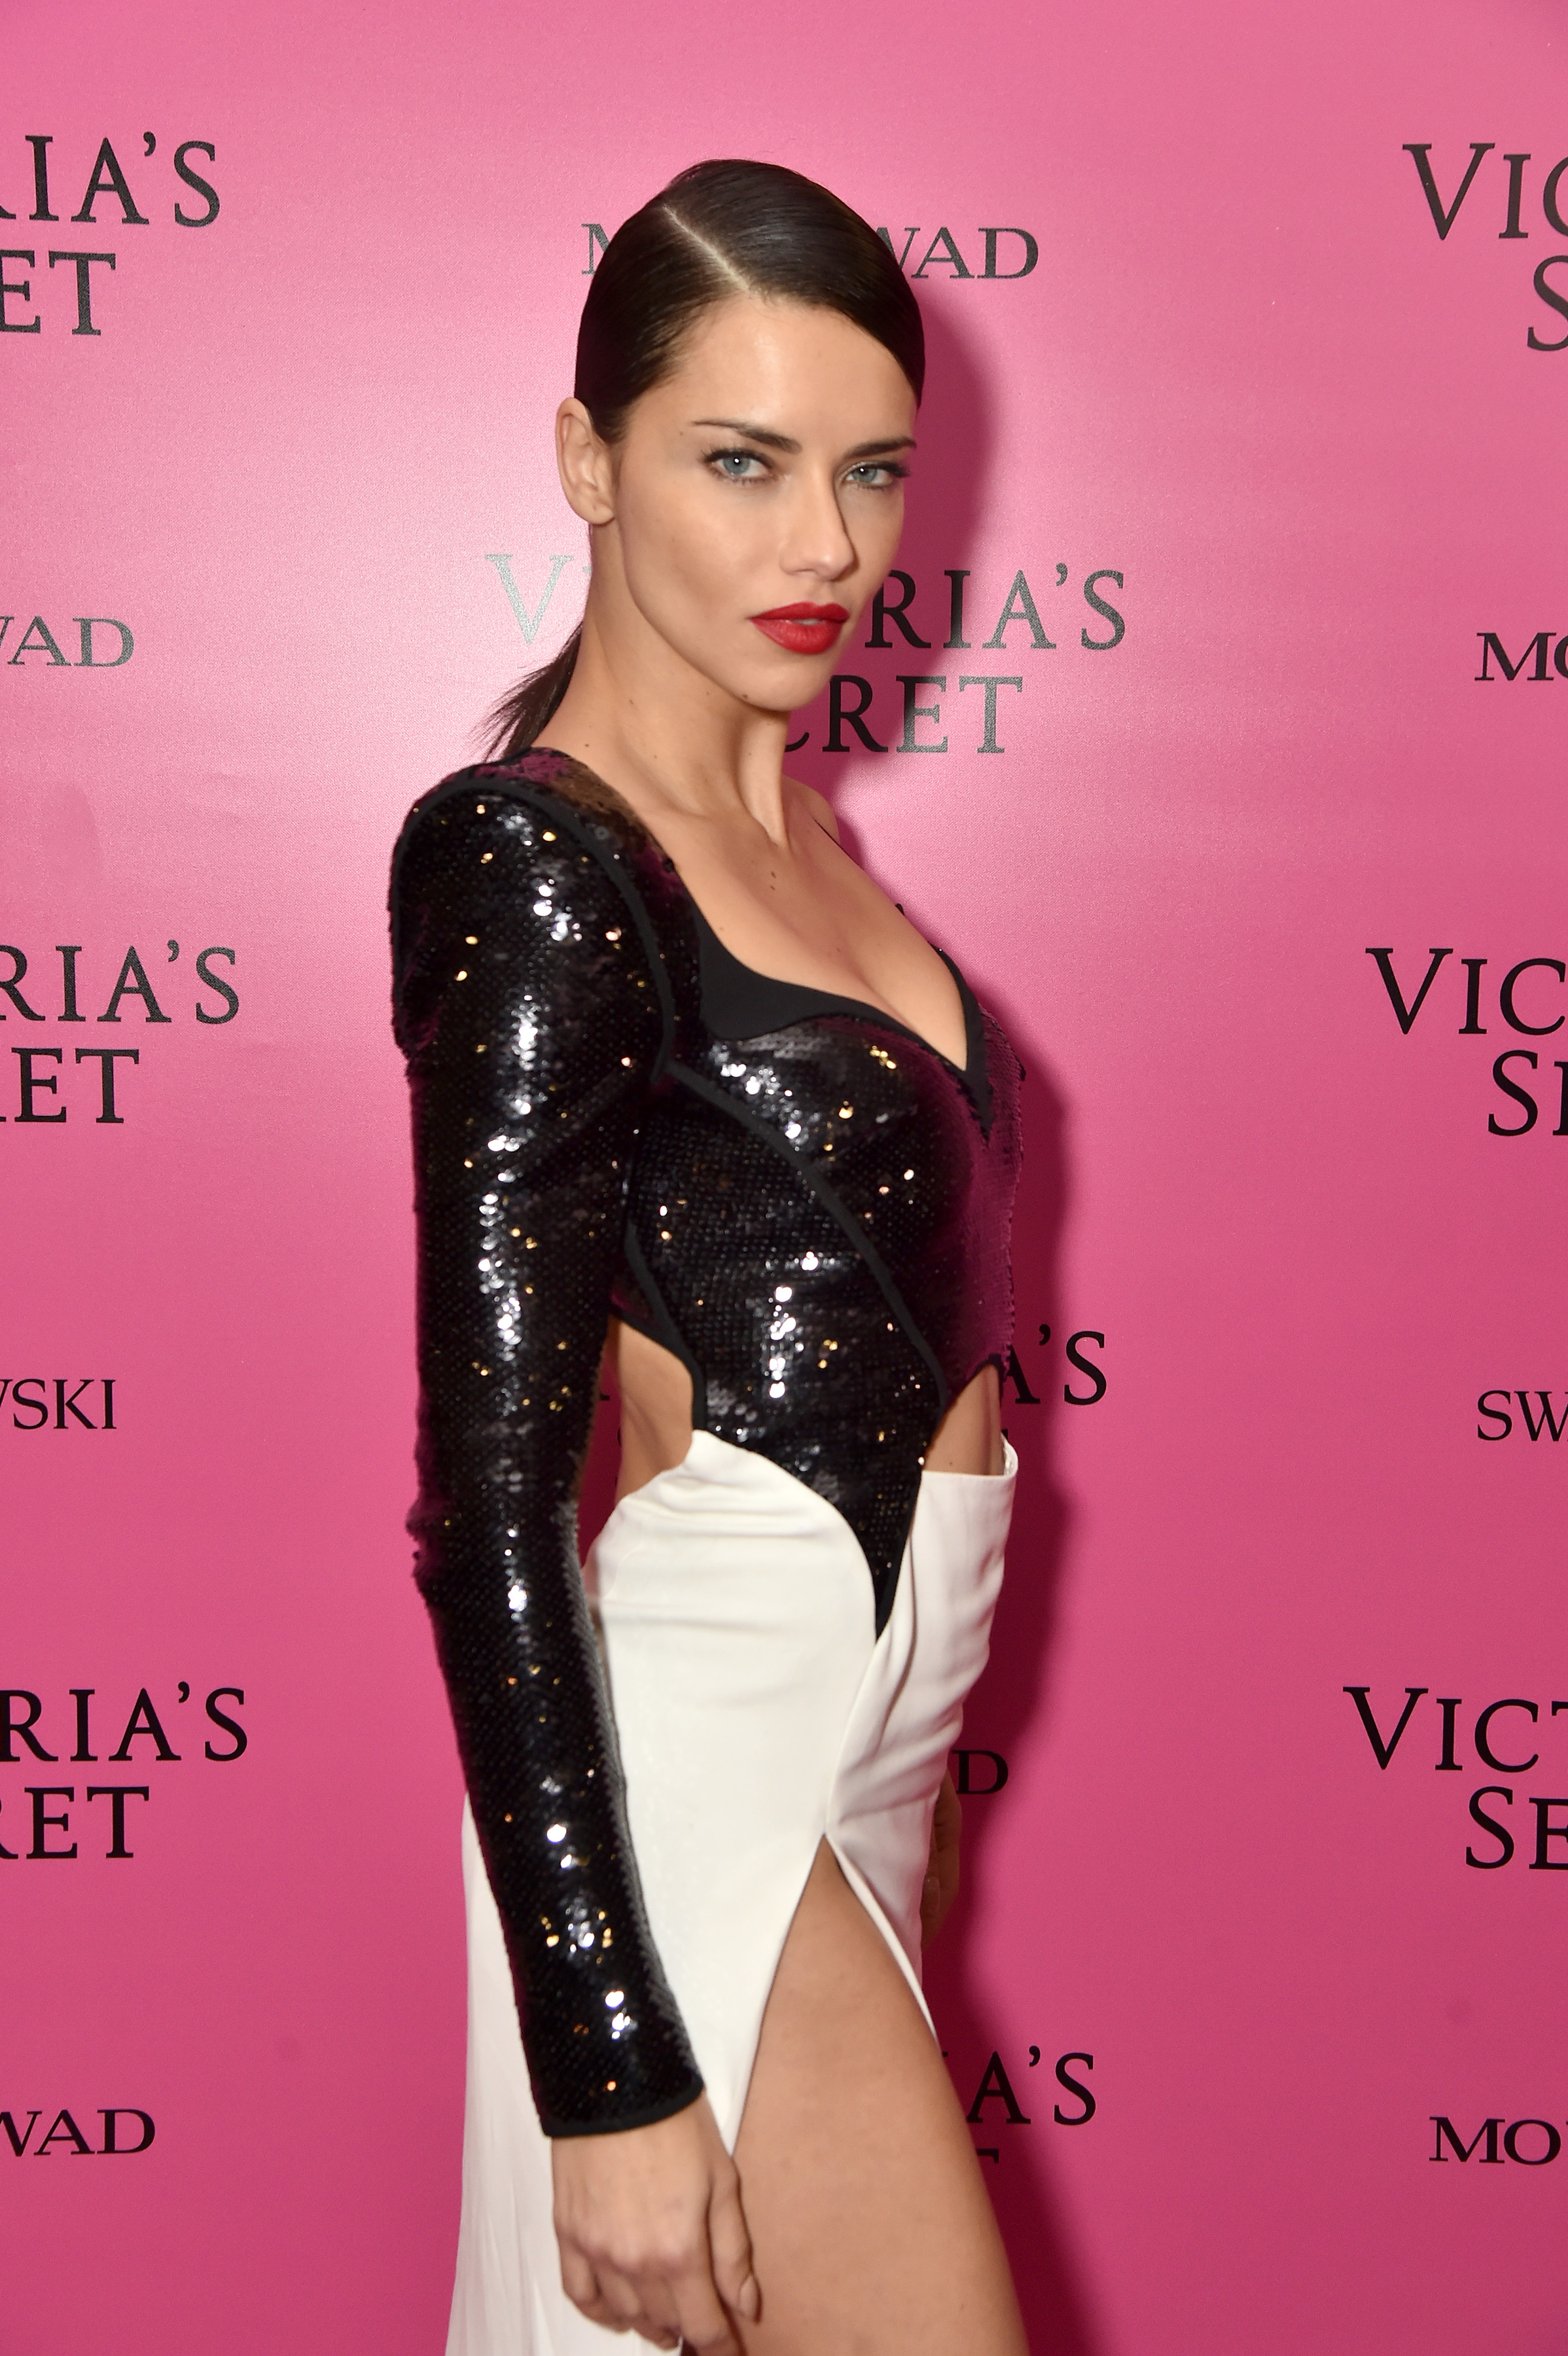 <p>The sequins have settled on the runway extravaganza that was the 2017 Victoria's Secrets fashion show.<br /> <br /> Shanghai played host to the Olympics of fashion that saw 60 top models slip into sky-high stilettos and diamond-encrusted wings to strut their stuff for the world's leading lingerie company.</p> <p>When it comes to the show's after party the models-of-the-moment slipped out of their lingerie and into slinky designer attire that left little to the imagination.</p> <p>Adriana Lima rocked a fitted look from Mugler, Bella Hadid went for a racy red gown from Alexandre Vauthier and Karlie Kloss and Romee Strijd donned sequinned mini-dresses, proving the wisdom behind the old adage: If you've got it, flaunt it.</p> <p> And that they all really, really did.</p> <p>Click through to see the best dressed models from the 2017 Victoria's Secret After Party</p>